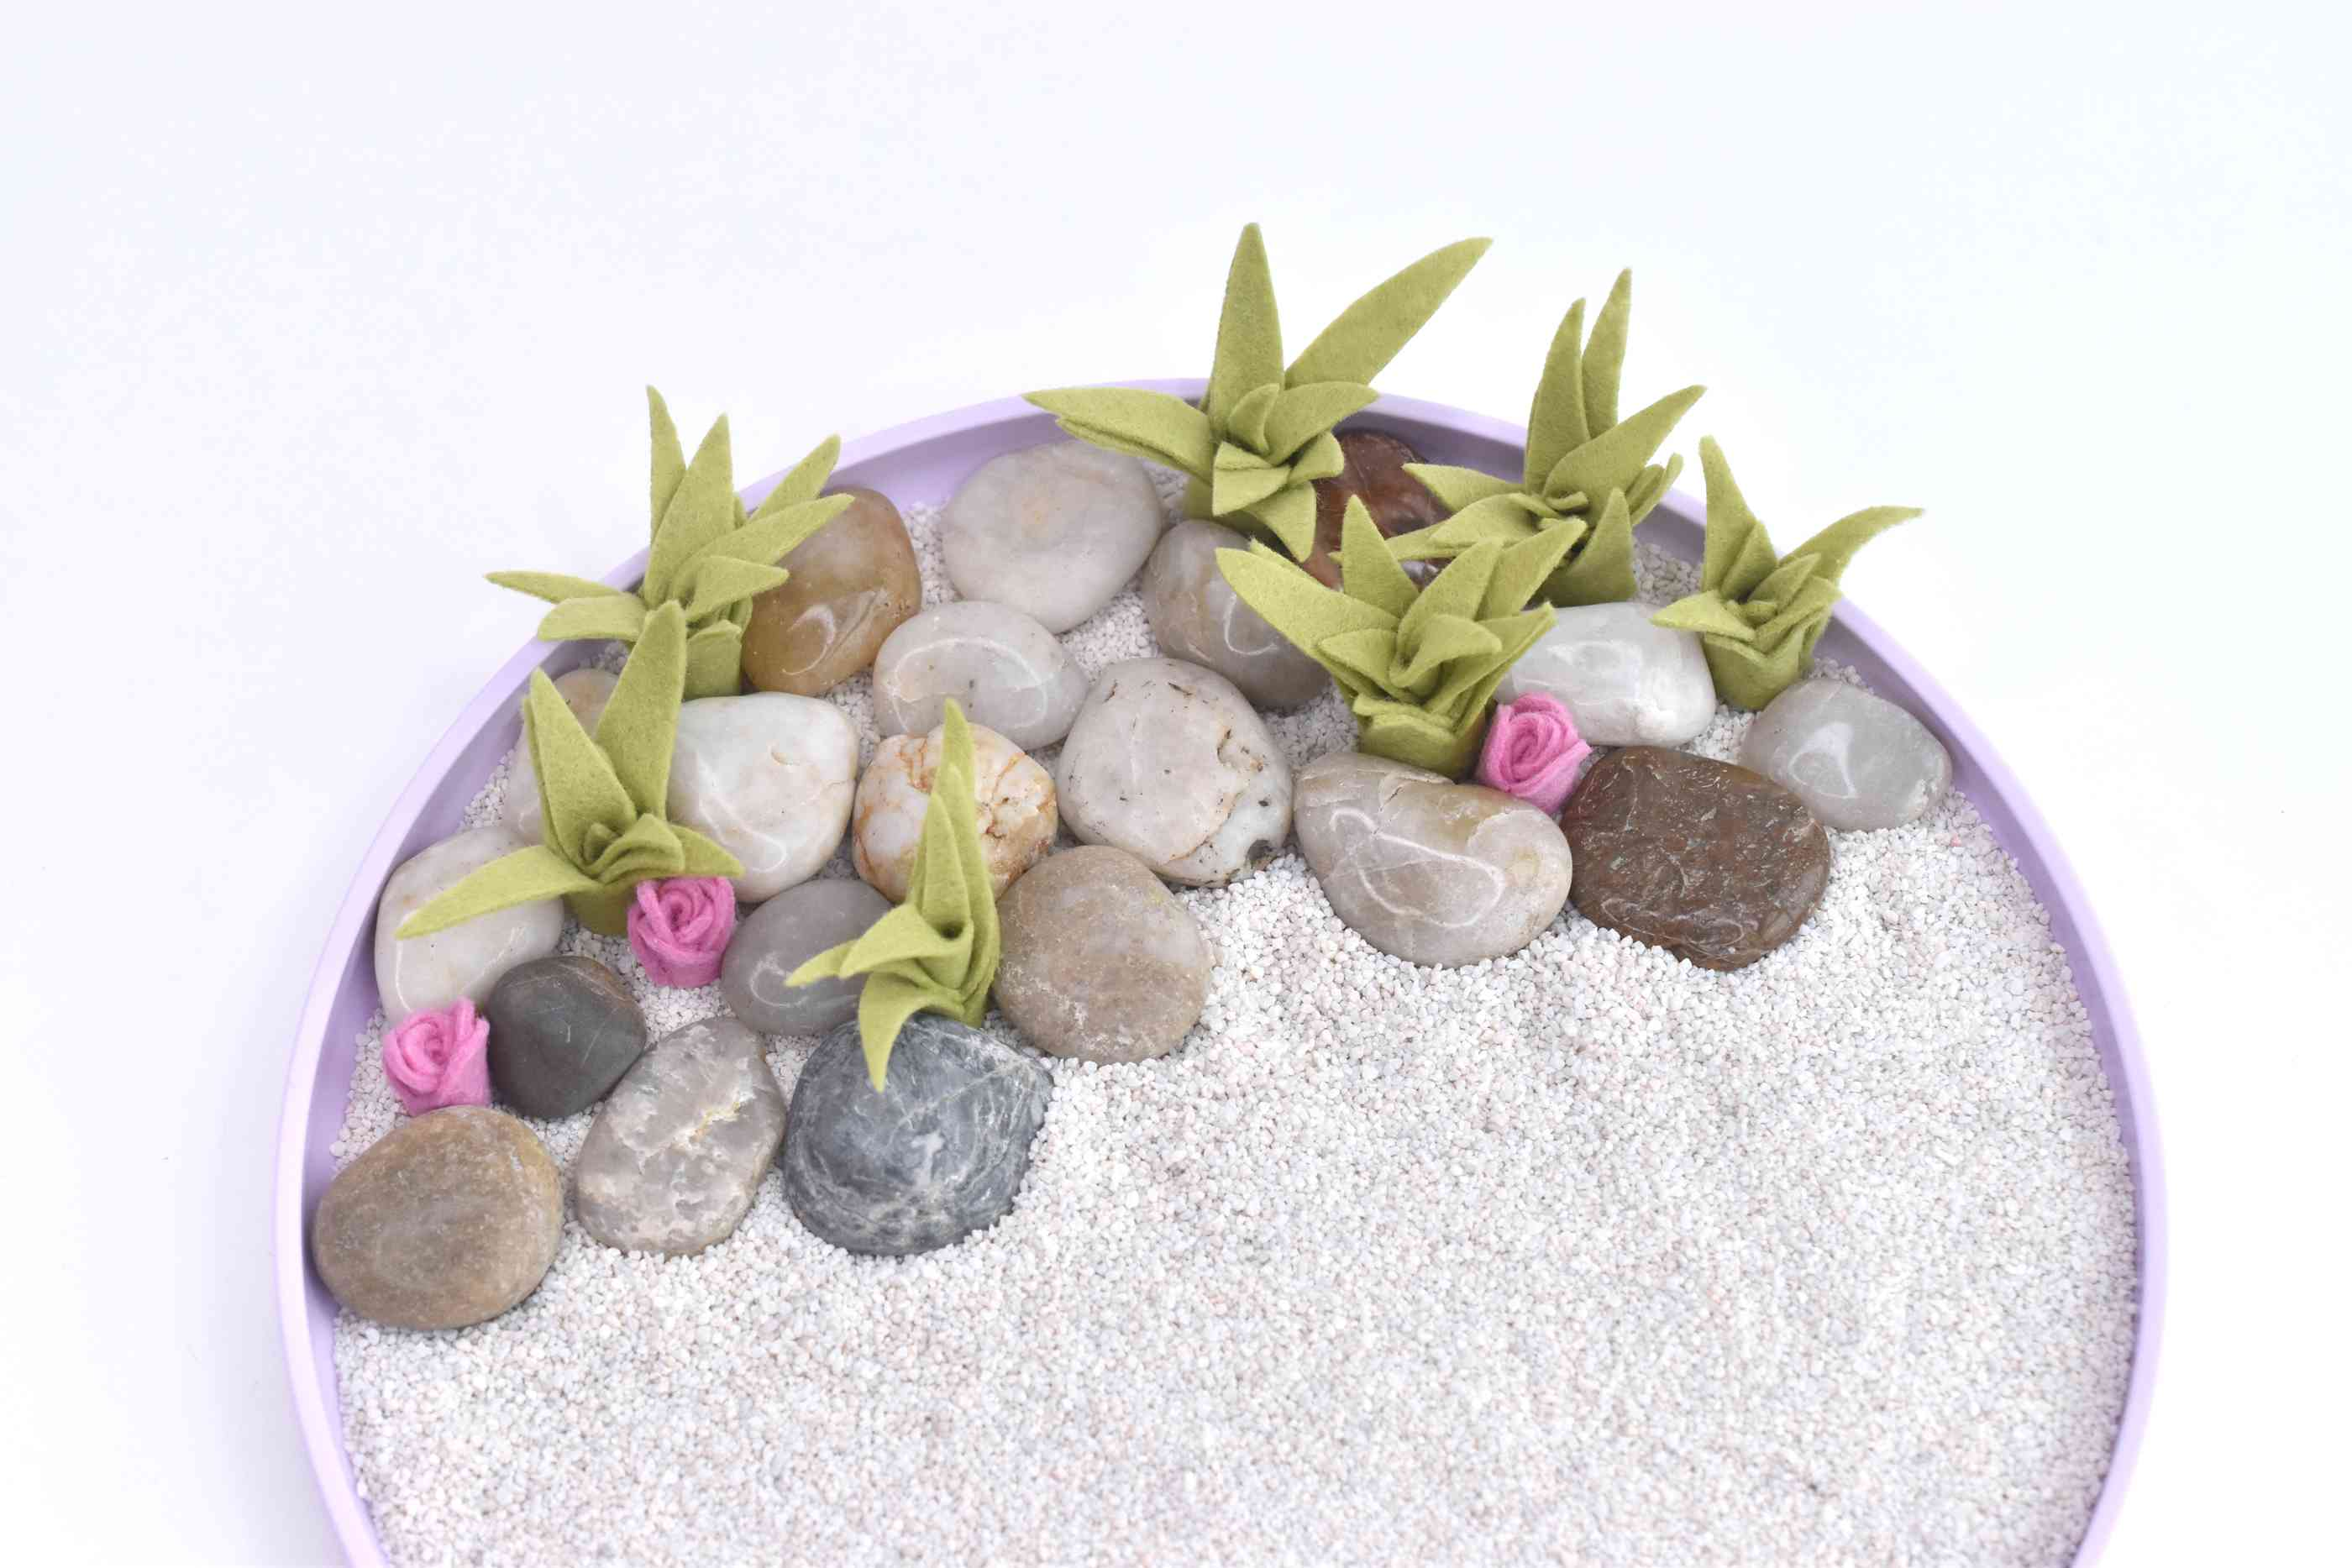 Place the Plants and Stones on One Side of the Tray